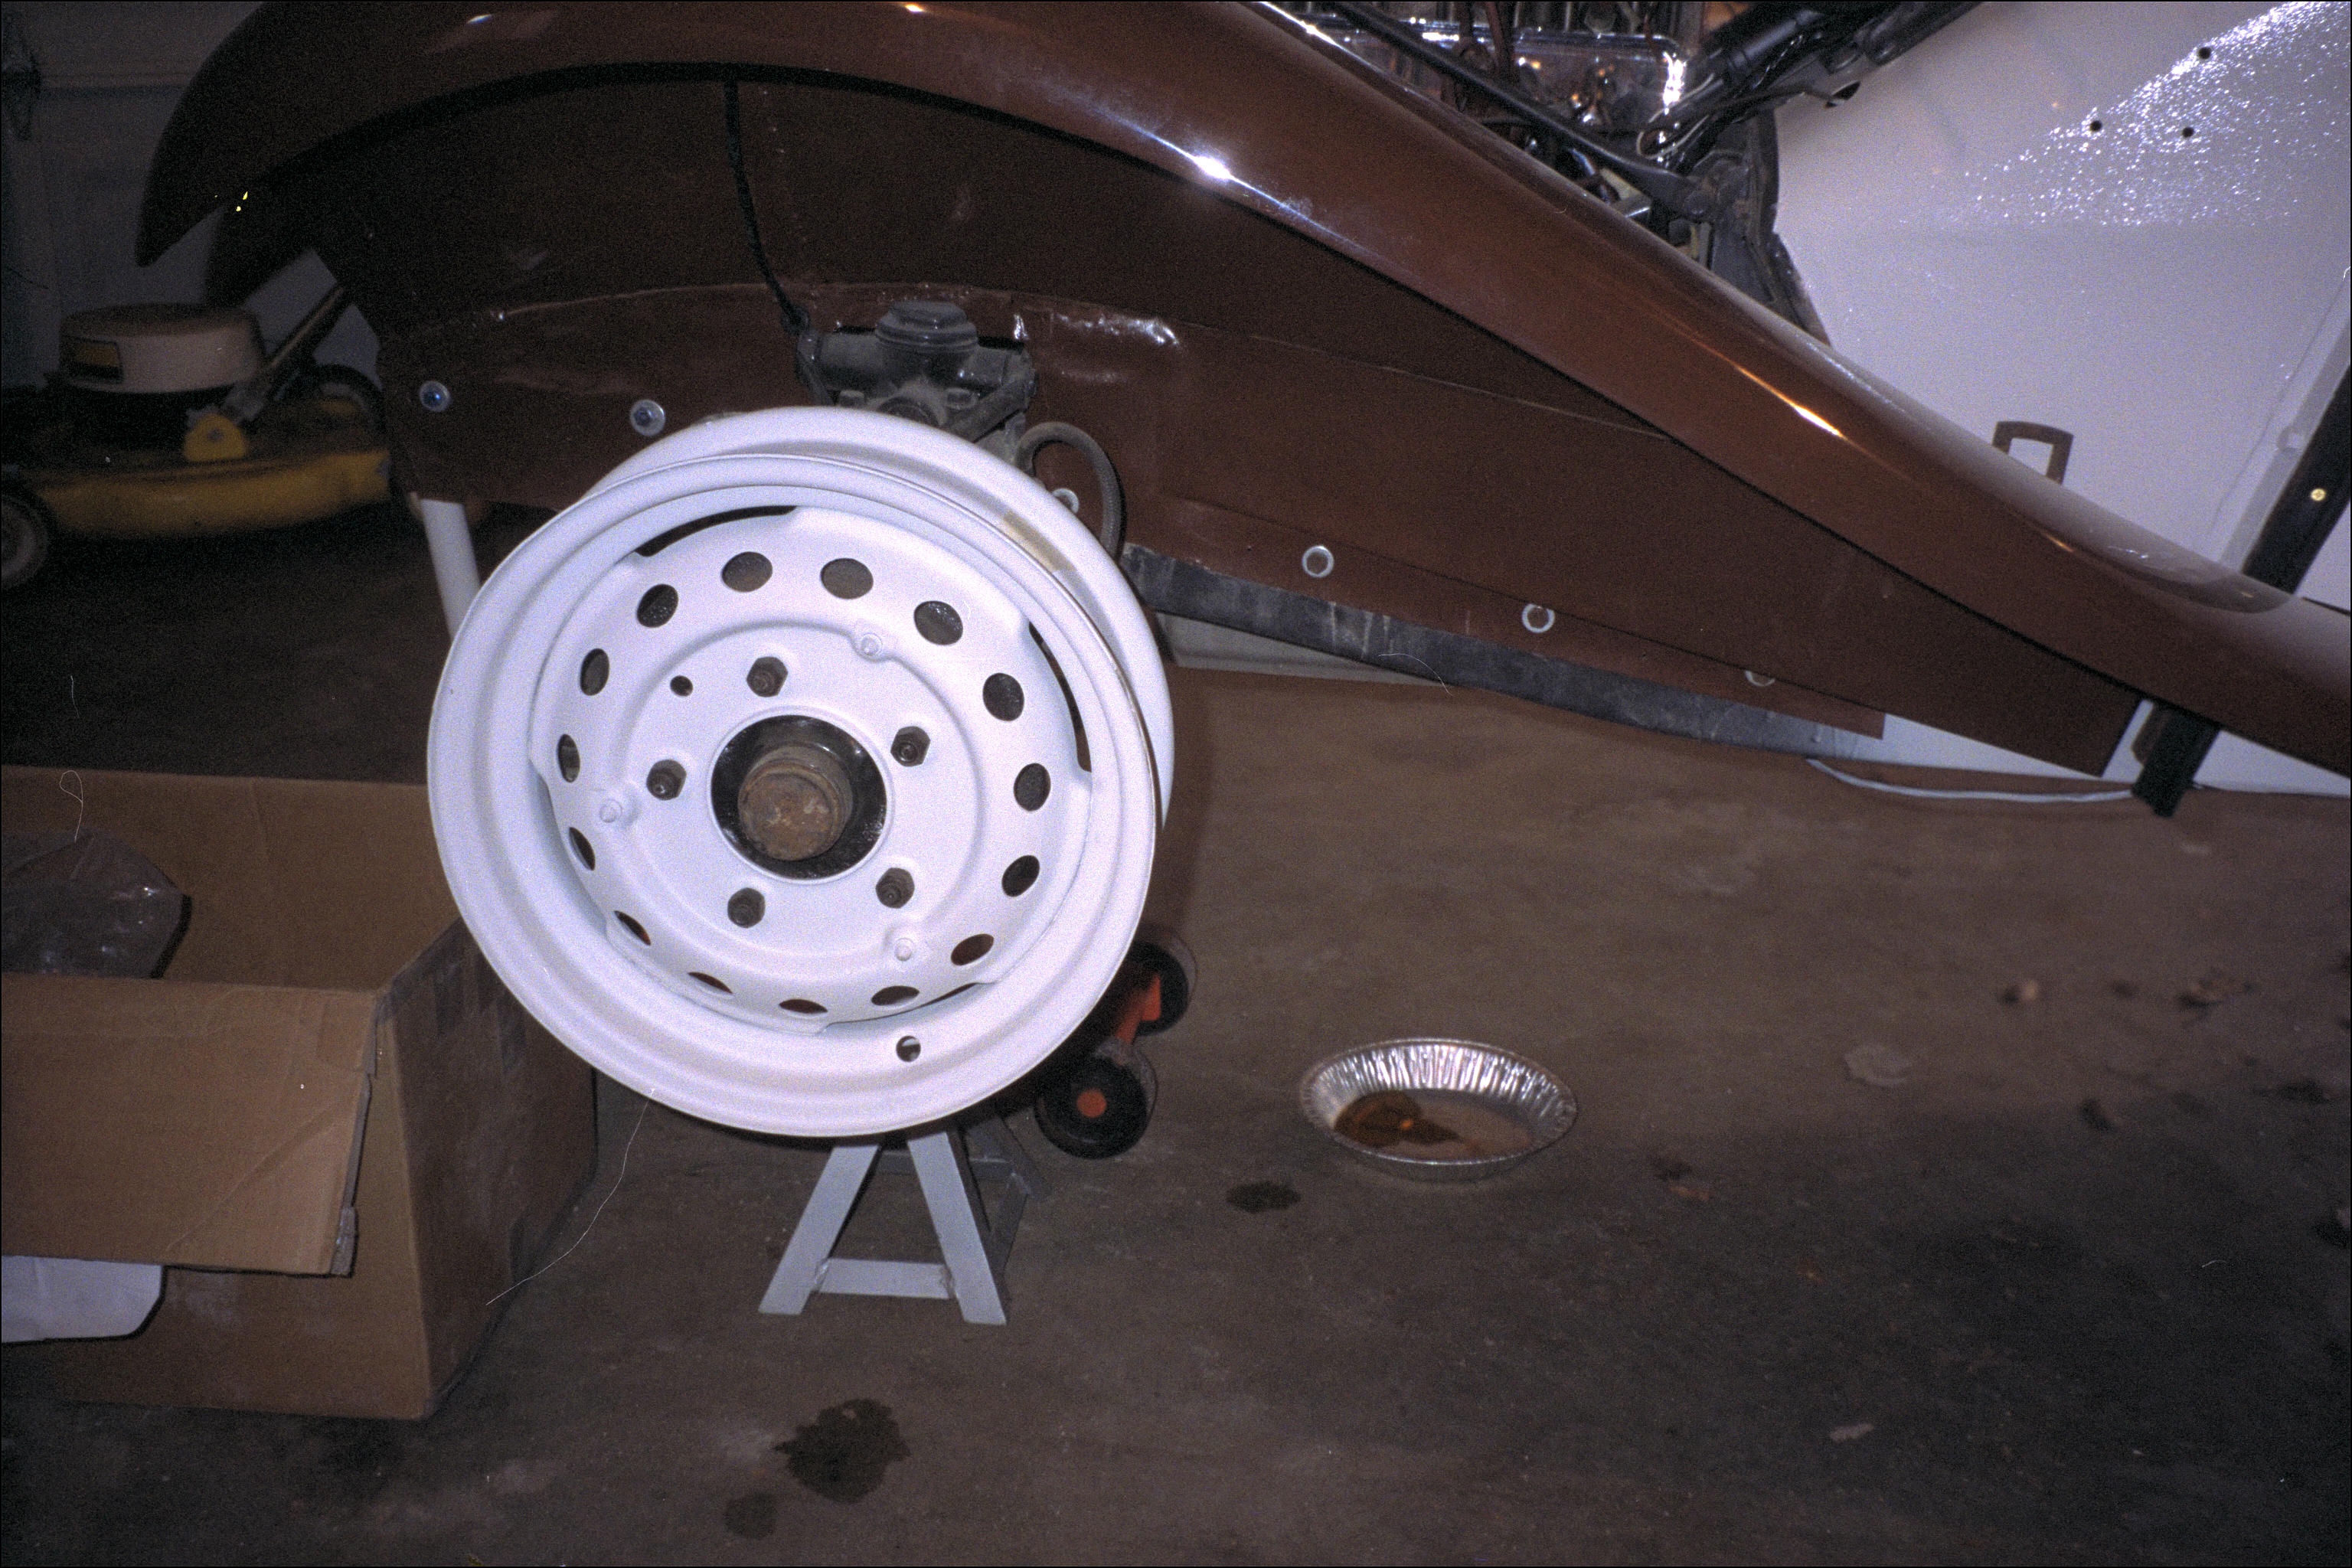 Painted rim on left front wheel